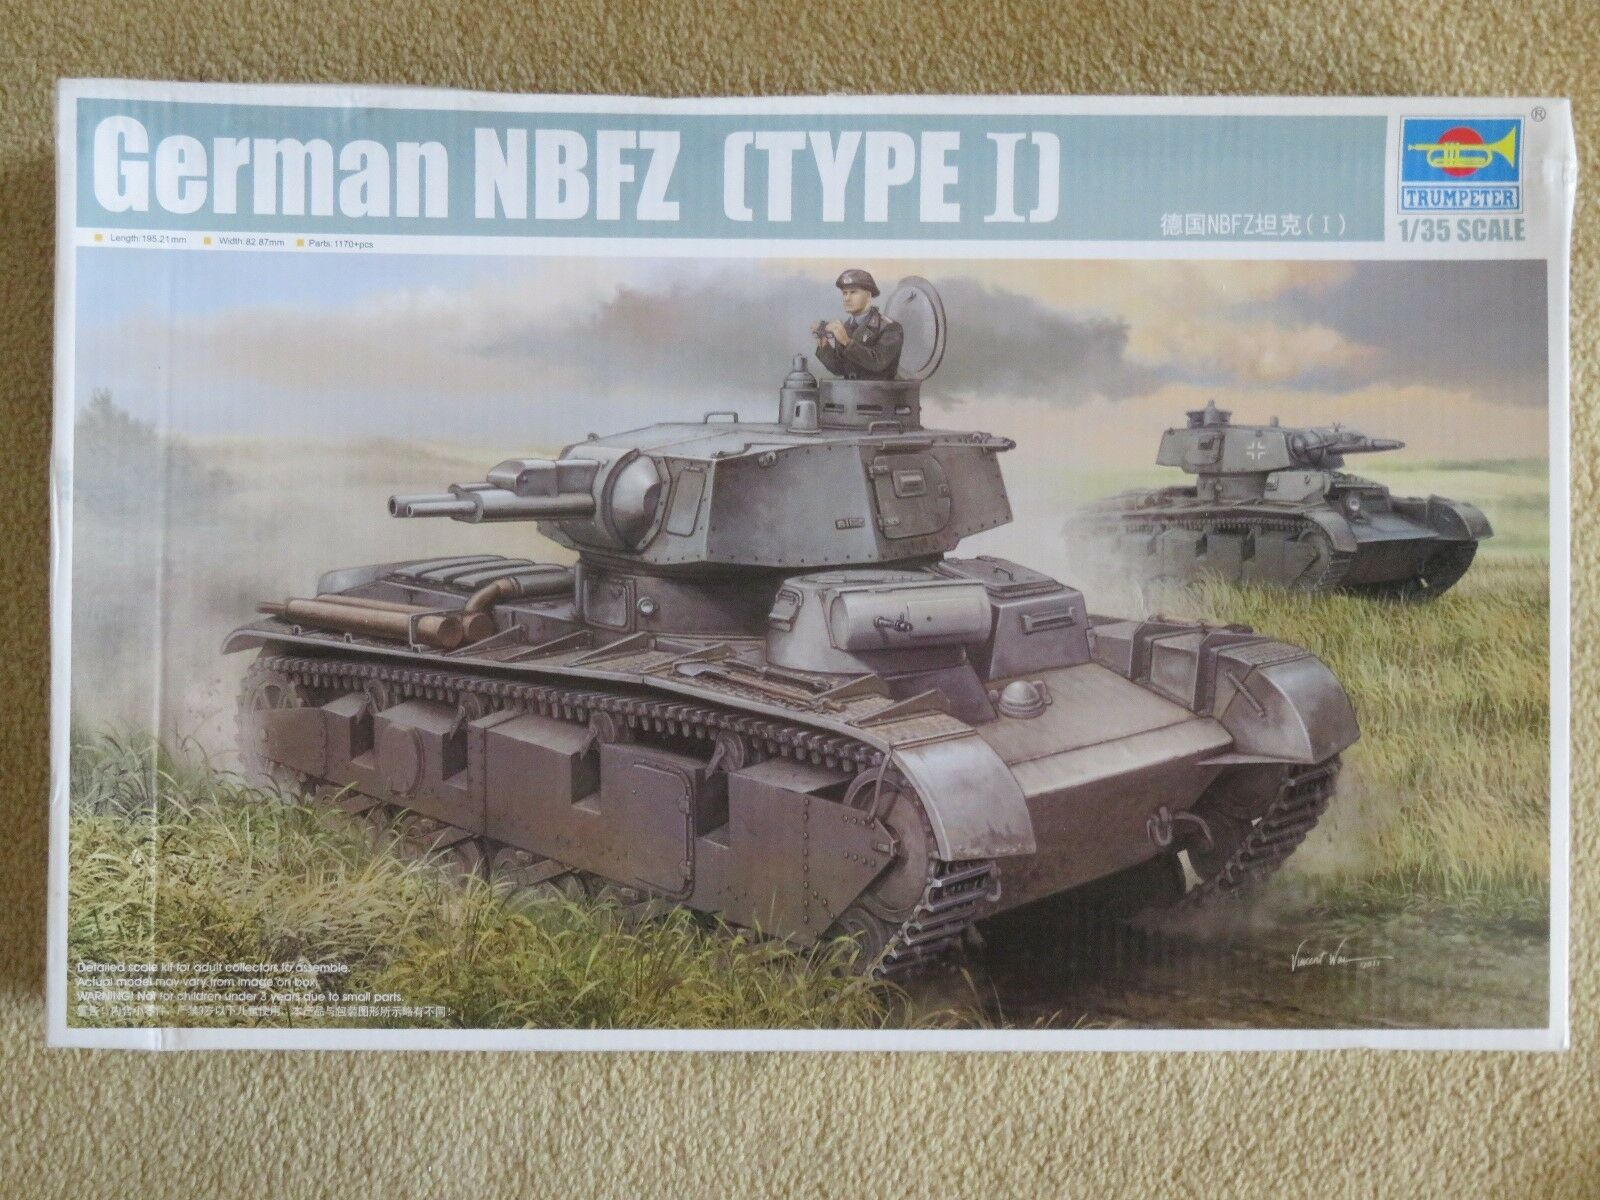 Trumpeter 1 35 scale German NBFZ  (Type 1)